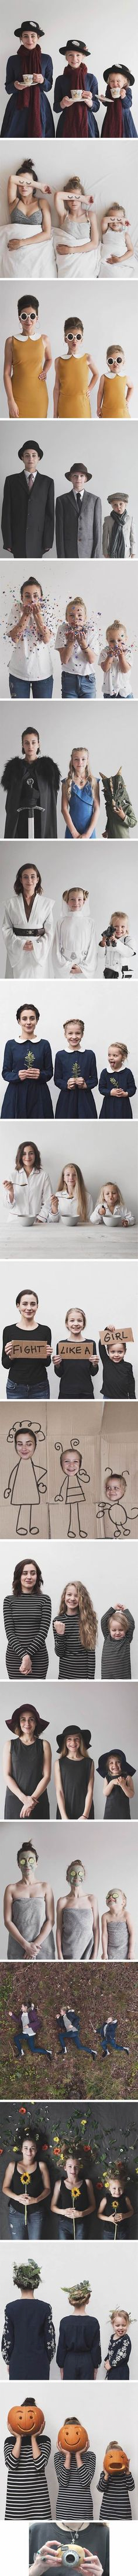 Mother Takes Adorable Photos With Her Two Daughters In Matching Clothing | Dank Memes